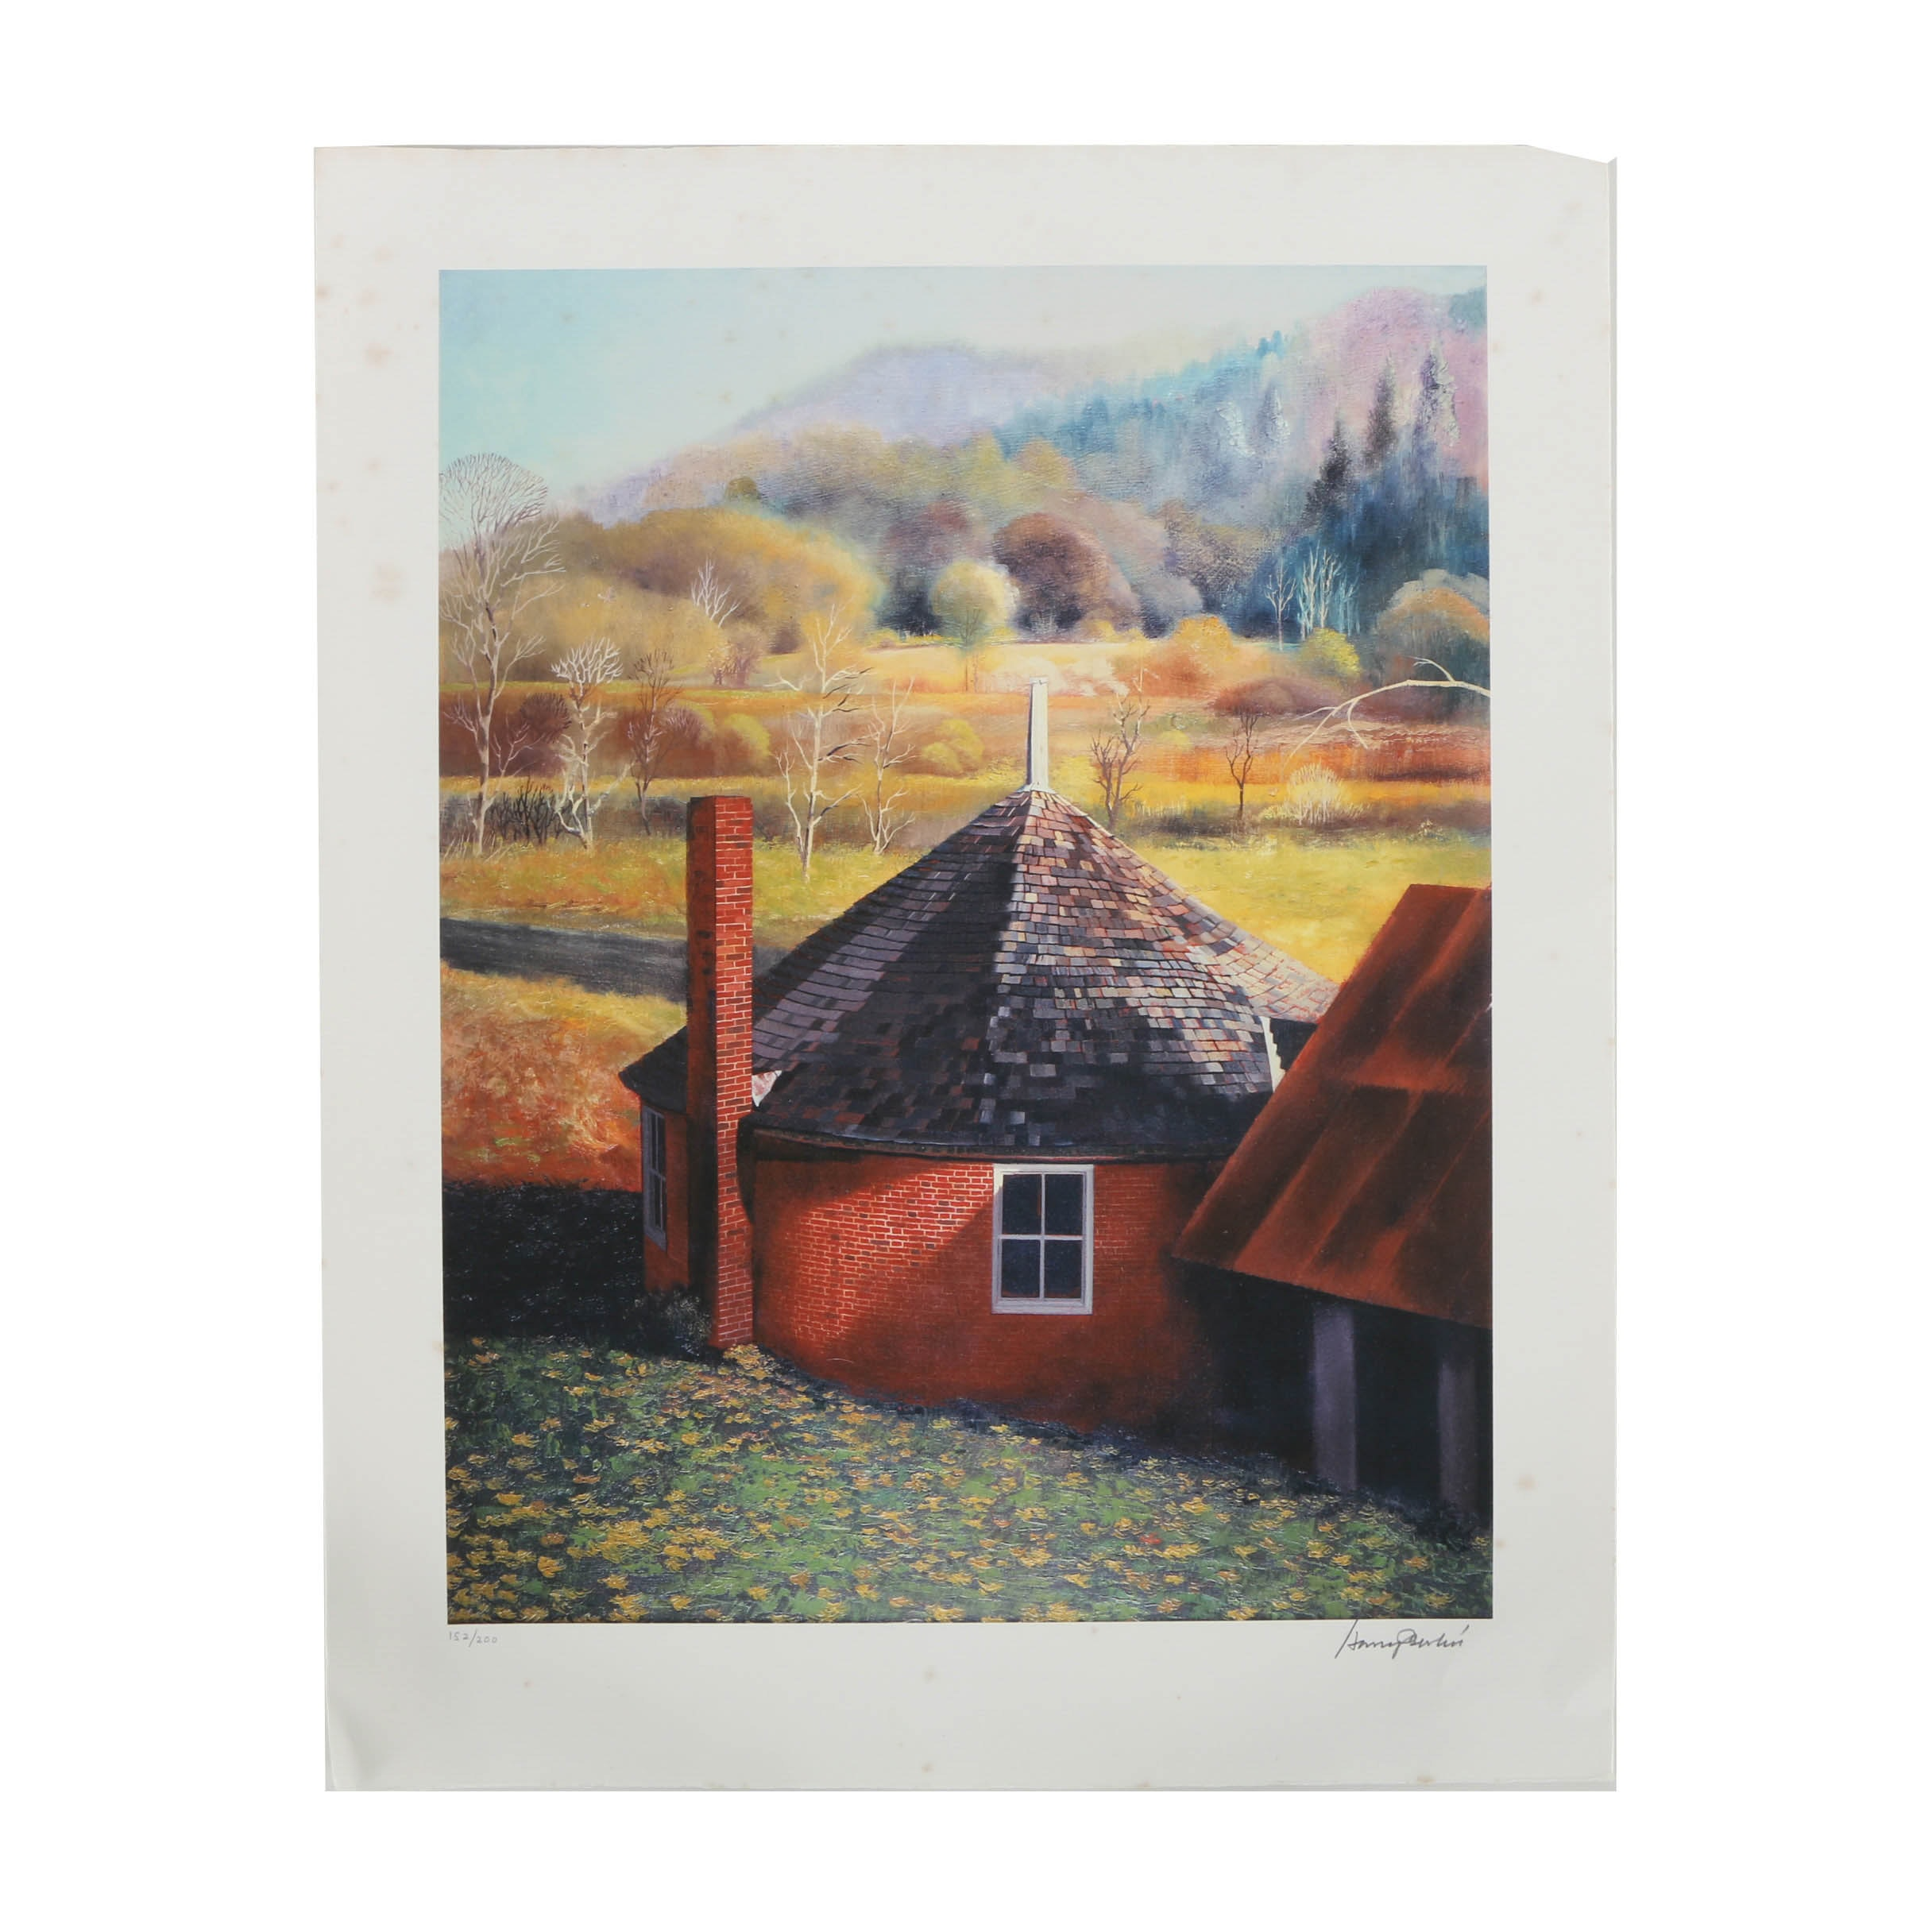 Limited Edition Giclee Print on Paper of Painting